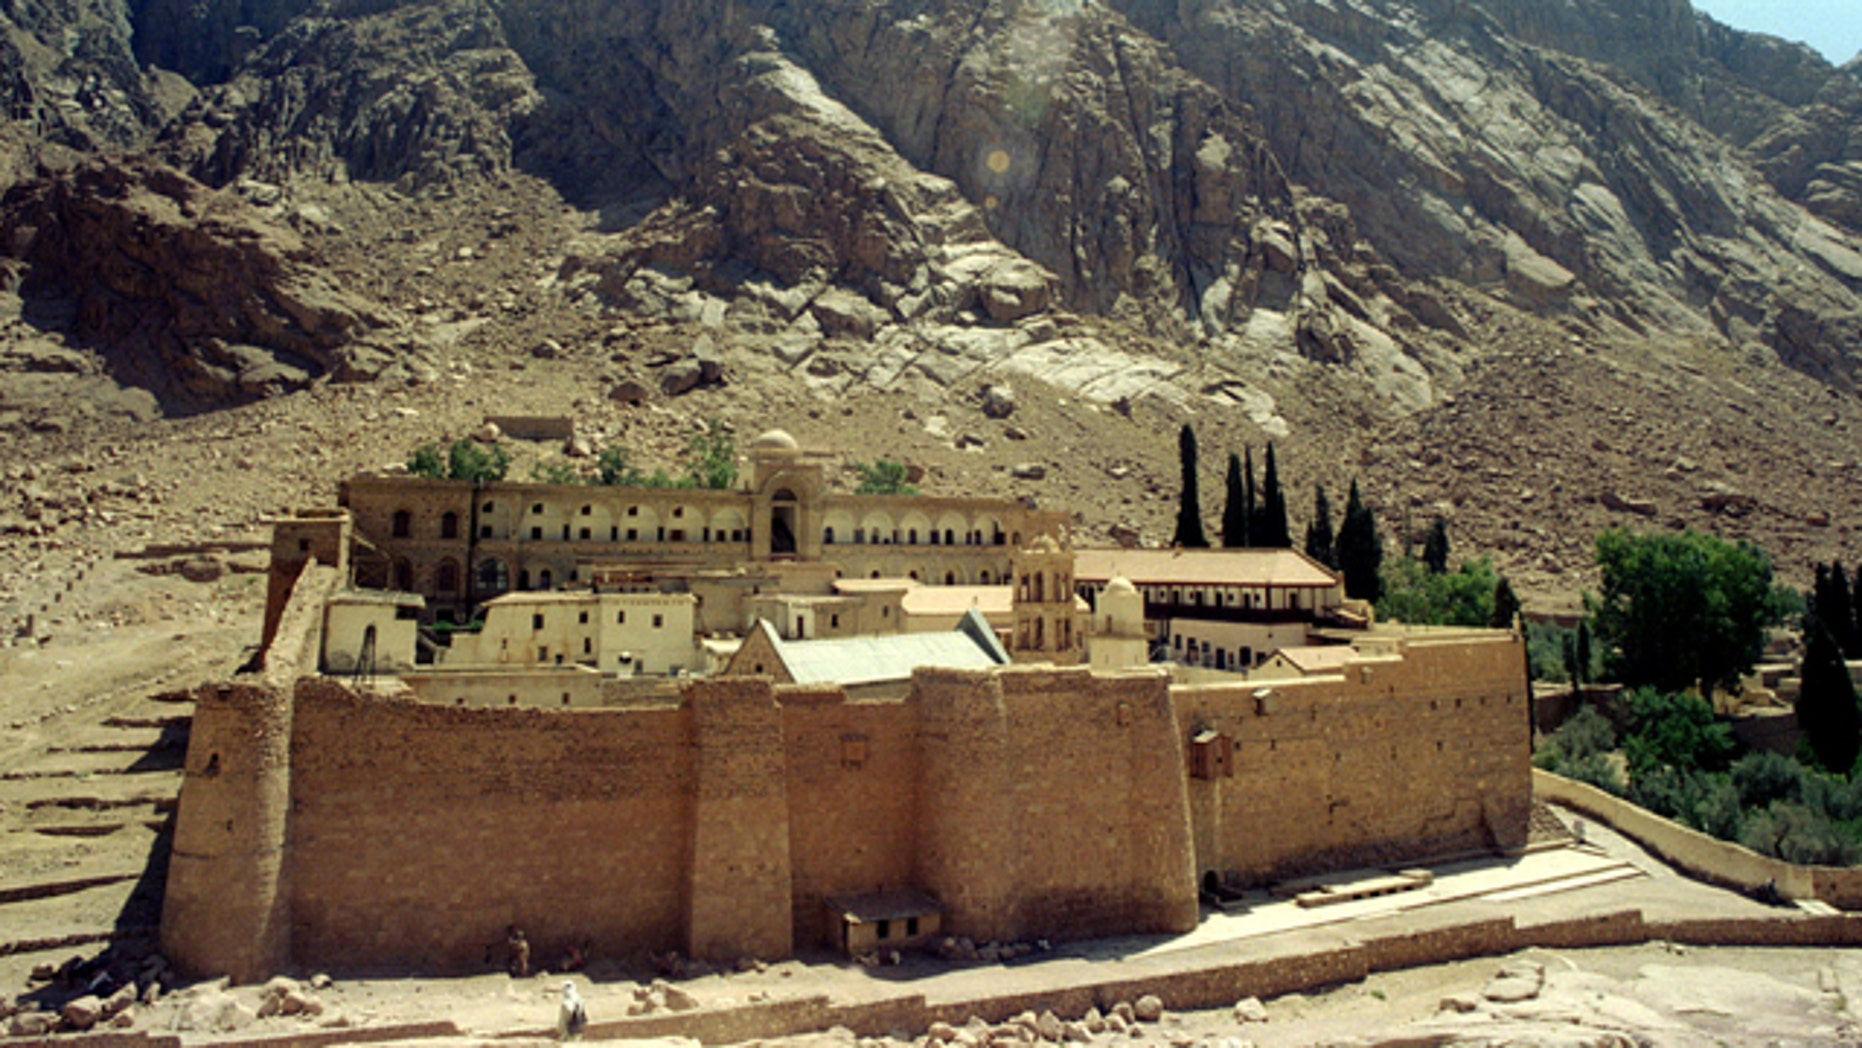 FILE: St Catherine's Monastery on Mount Sinai, stands surrounded by the steep cliffs under the blazing desert sun in Egypt's Sinai Peninsula.